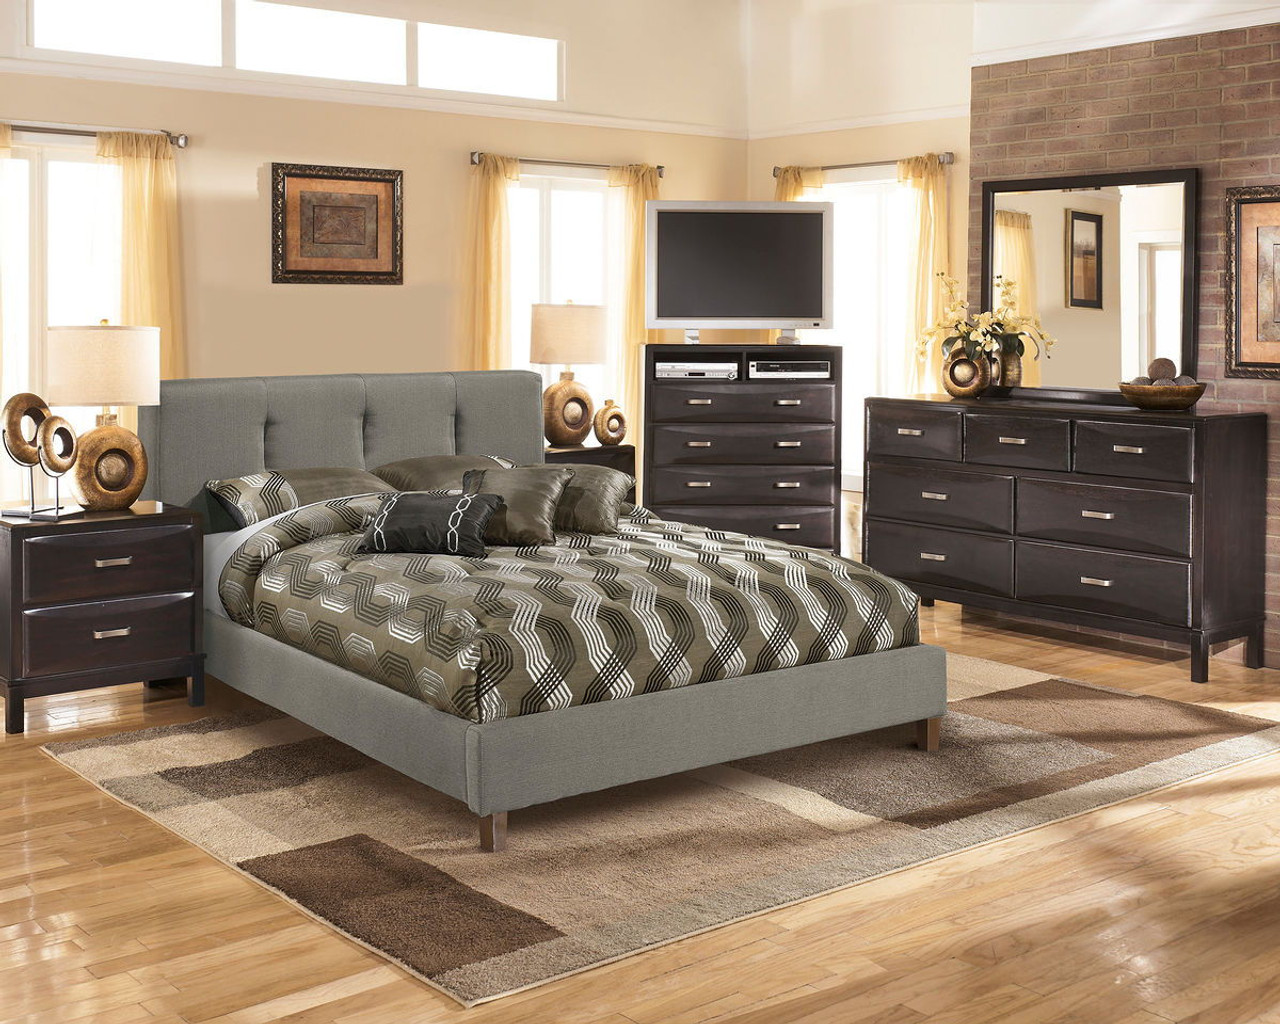 The Kira Almost Black 4 Pc Dresser Mirror Masterton Queen Uph Bed Available At Direct Value Furniture Serving Roscoe Il And Surrounding Areas